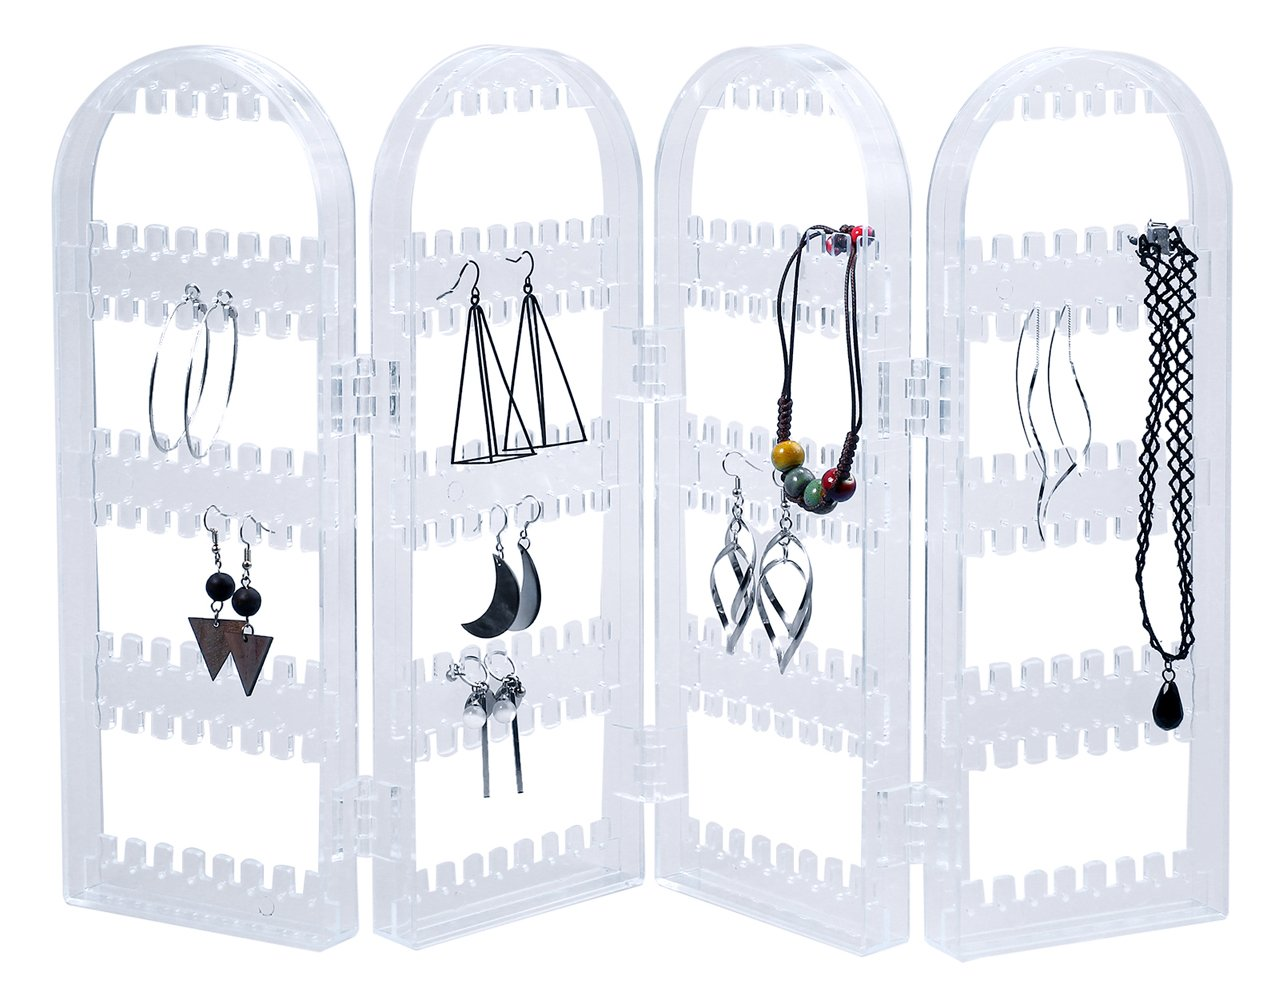 Tanice 4-Panel Jewelry Organizer Stand Earring Holder Foldable Acrylic Earring Organizer Chain Necklace Display Stand Transparent for Home TANHM253US